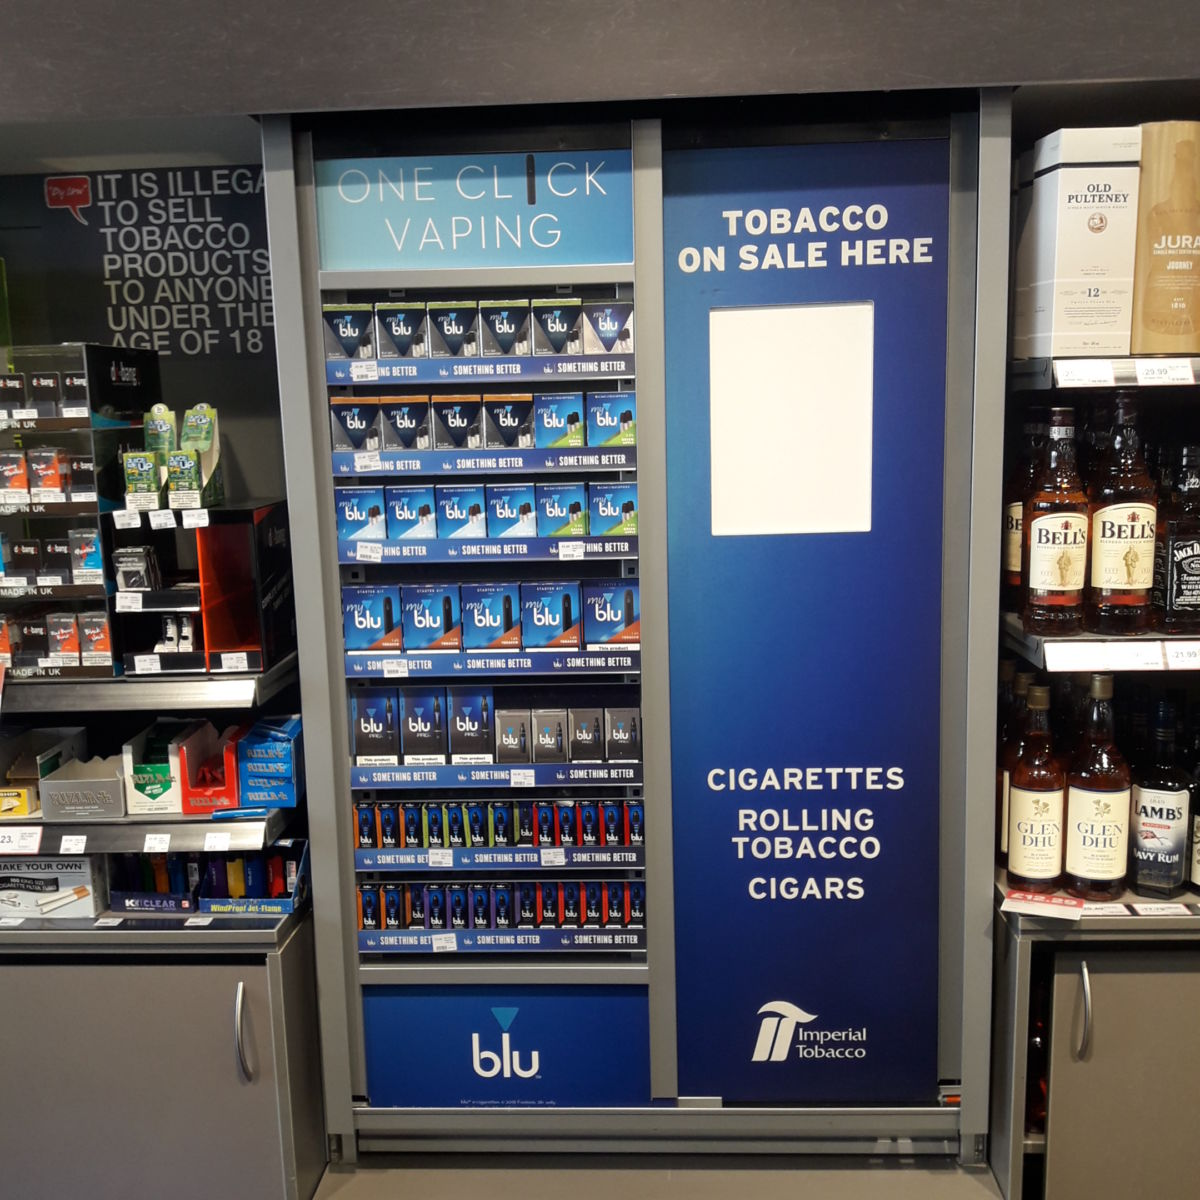 MyBlu vaping POS display installed by Aspen Concepts